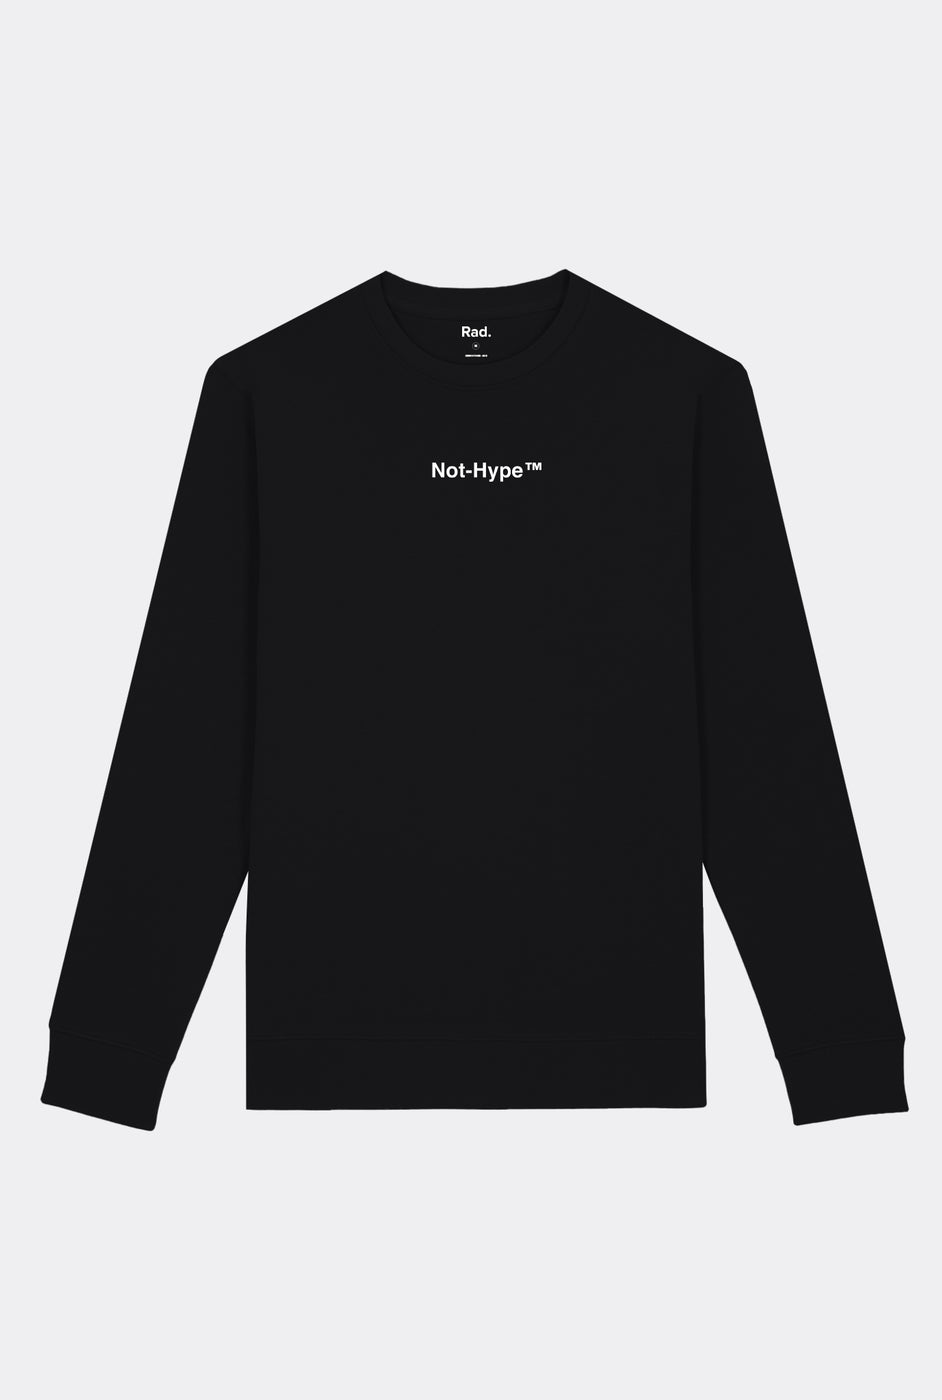 Crewneck Not Hype